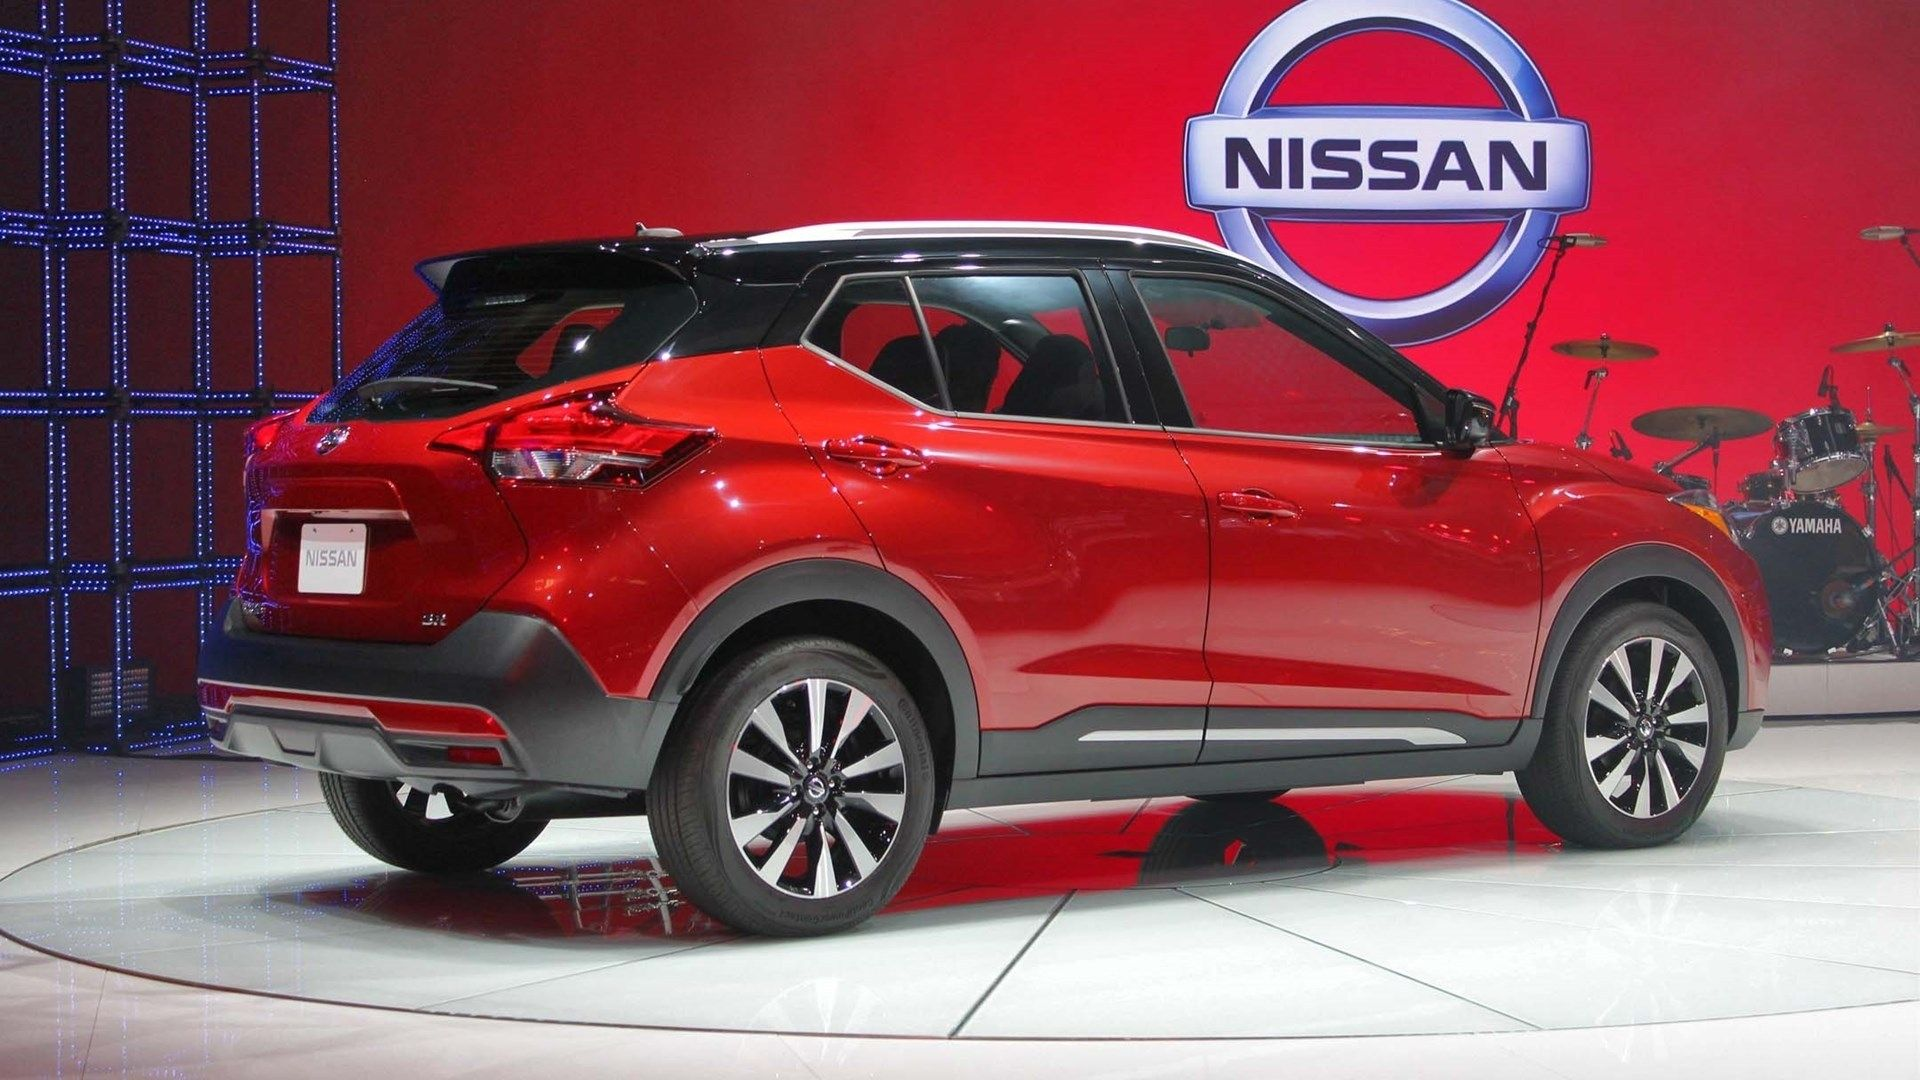 2020 Nissan Kicks Nismo Interior Changes Engine Changes Nissan Awd Nissan Nismo